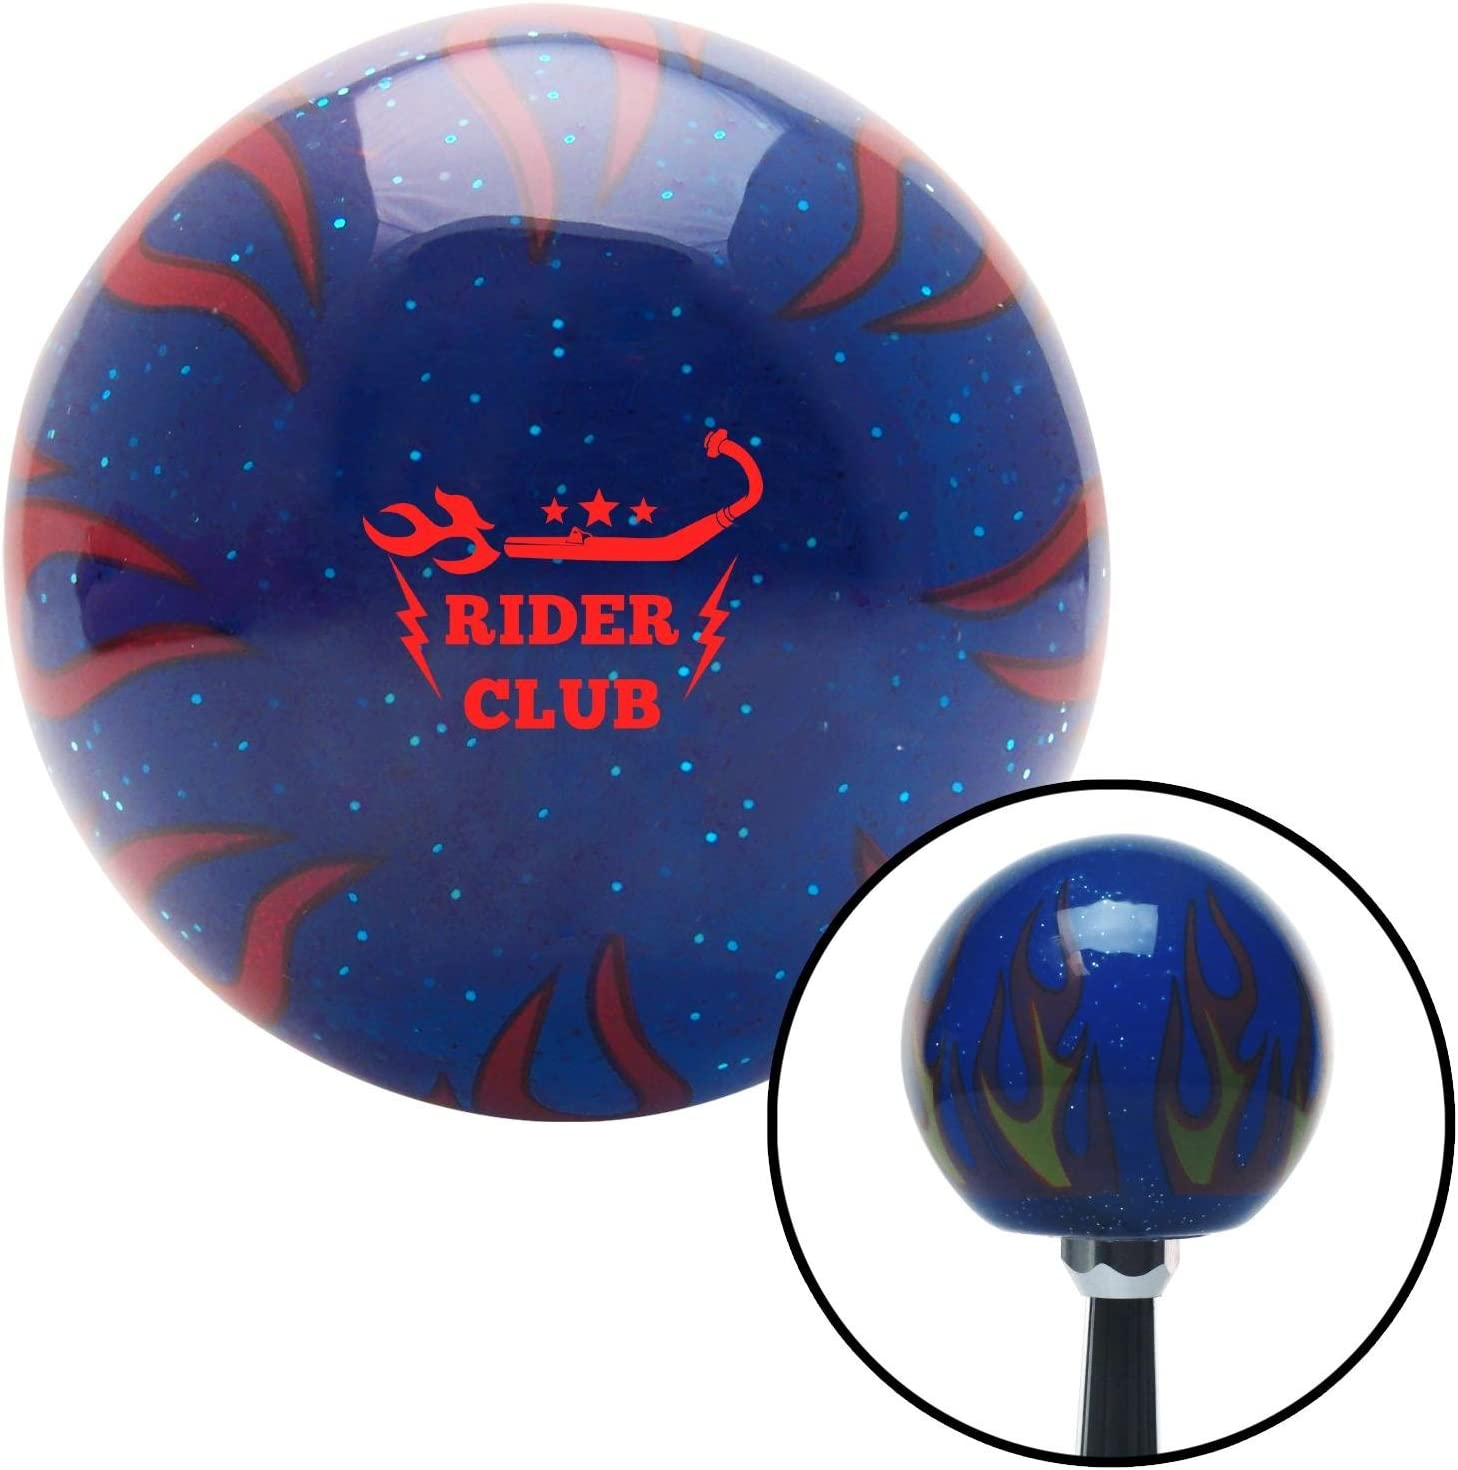 American Shifter 298093 Shift Knob Red Rider Club Blue Flame Metal Flake with M16 x 1.5 Insert